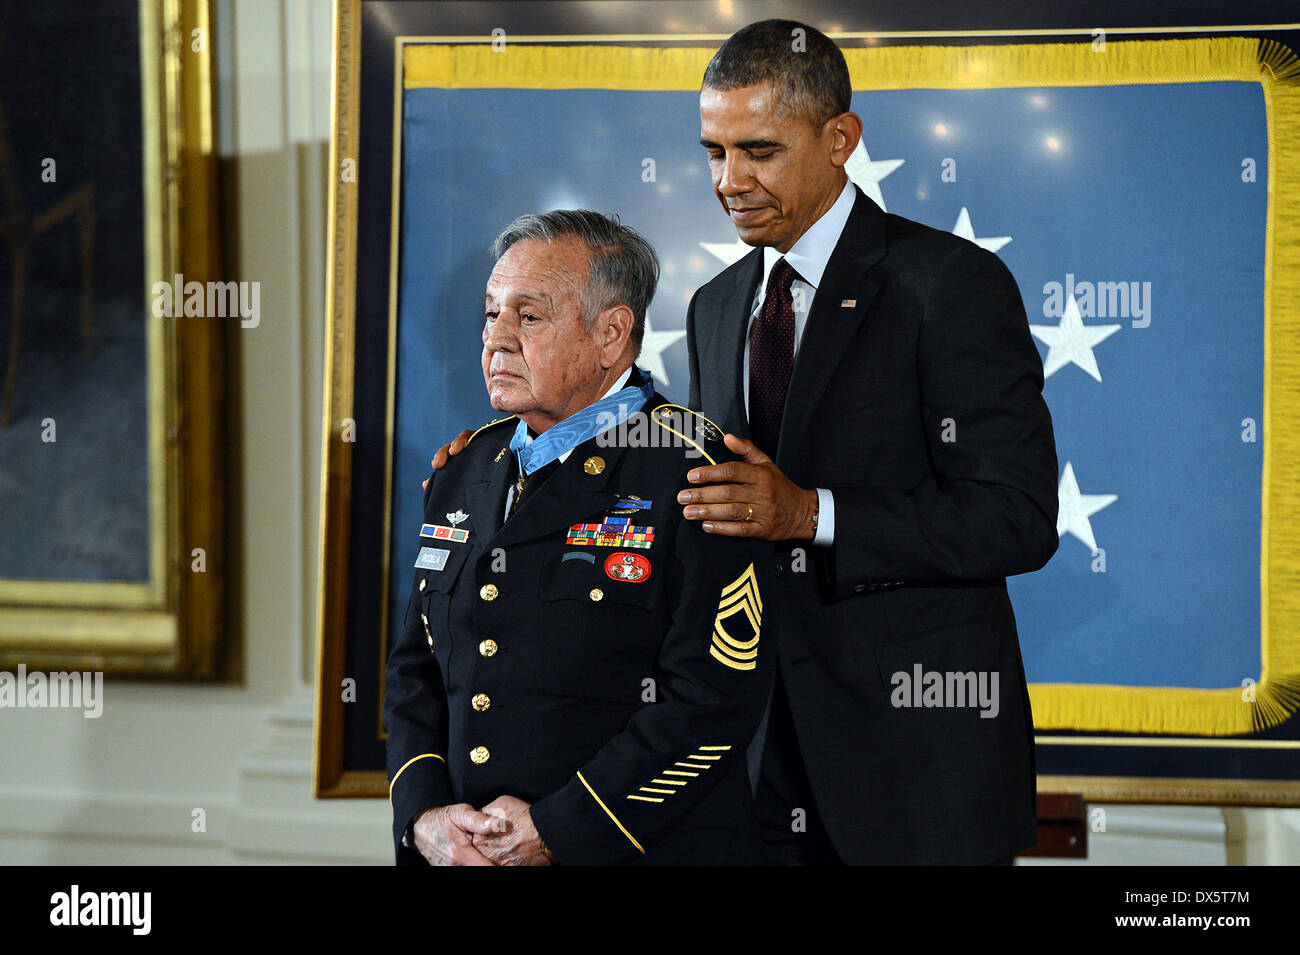 US President Barack Obama awards the Medal of Honor to Master Sgt. Jose Rodela during a ceremony at the White House March 18, 2014 in Washington D.C. Rodela earned the Medal of Honor for his valorous actions during combat operations against an armed enemy in Phuoc Long Province, Republic of Vietnam on September 1, 1969. - Stock Image